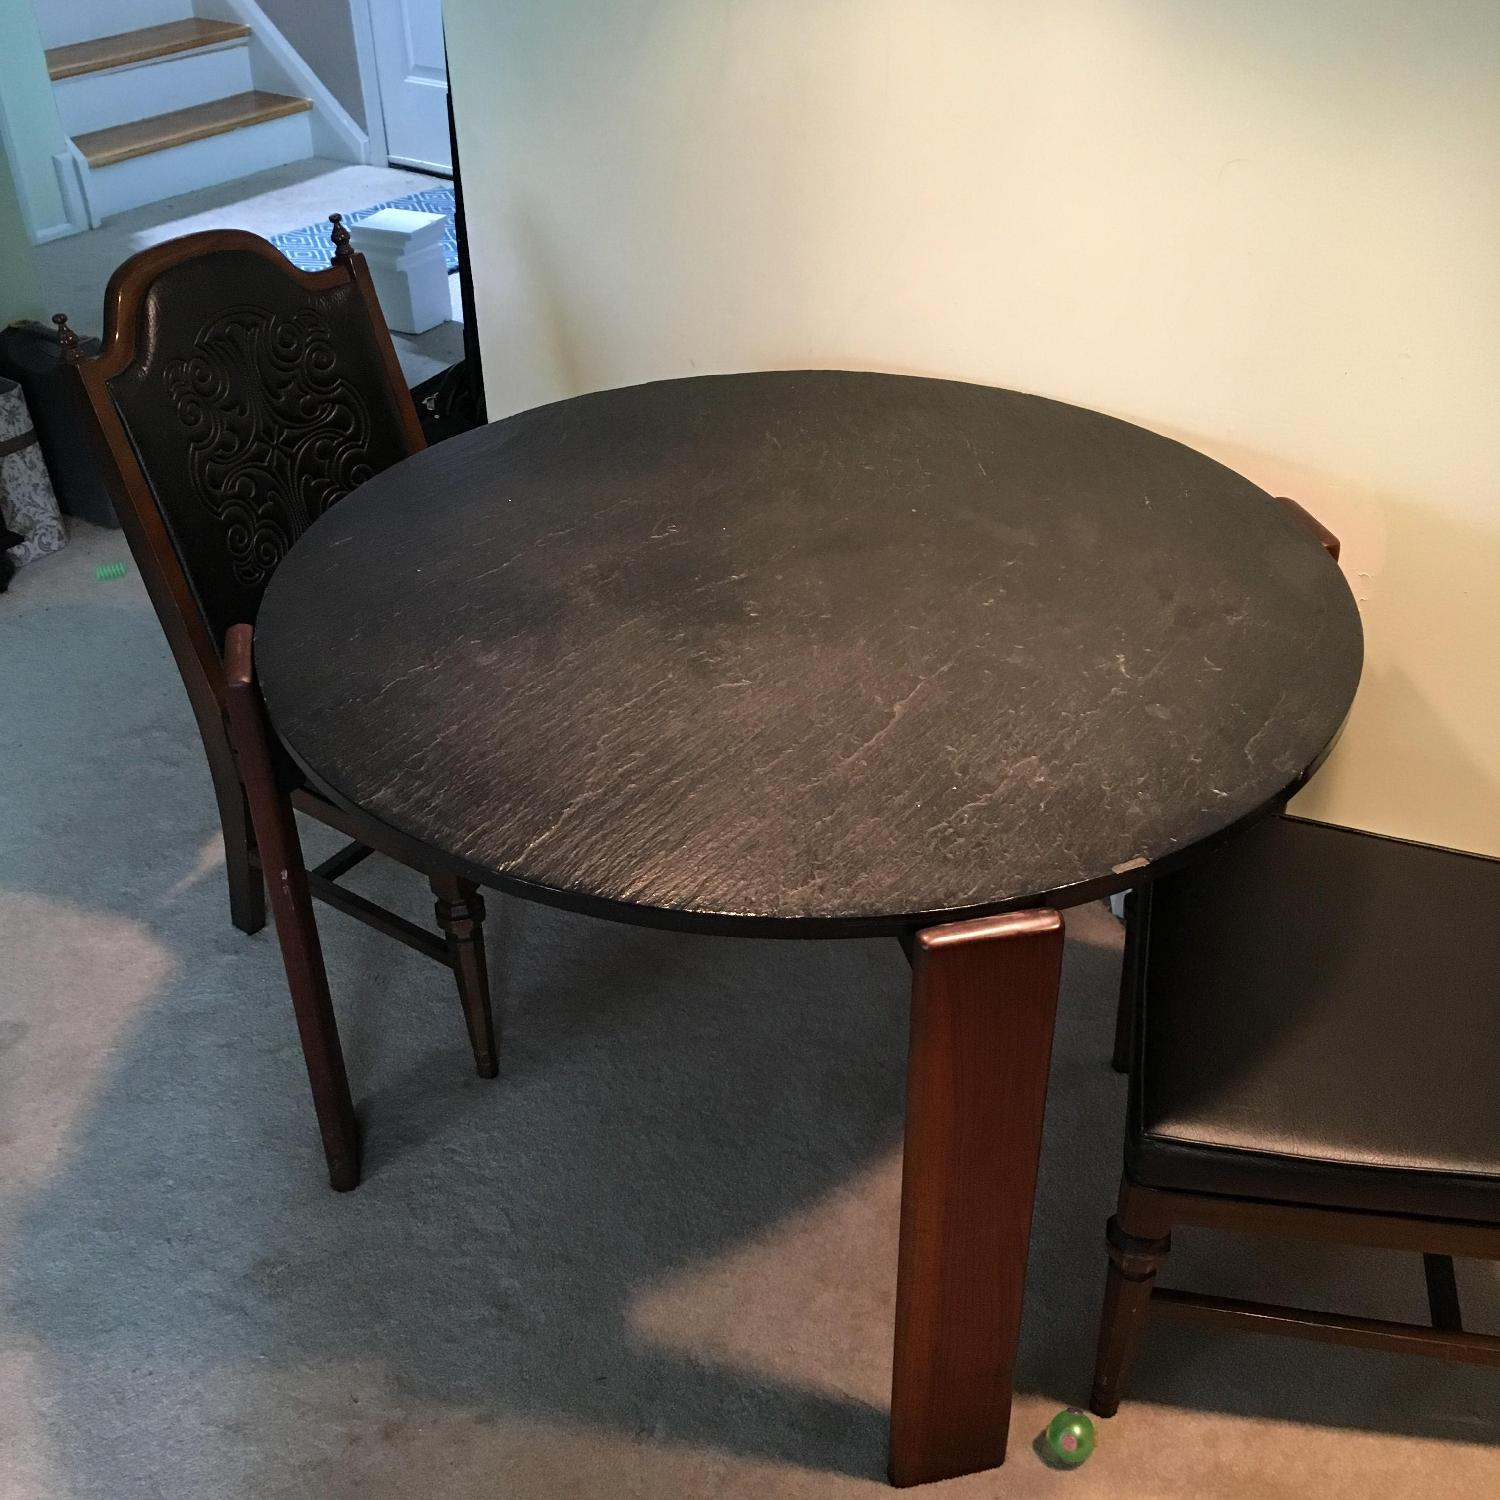 1960s Black Slate Dining Table w/ 4 Chairs - image-1